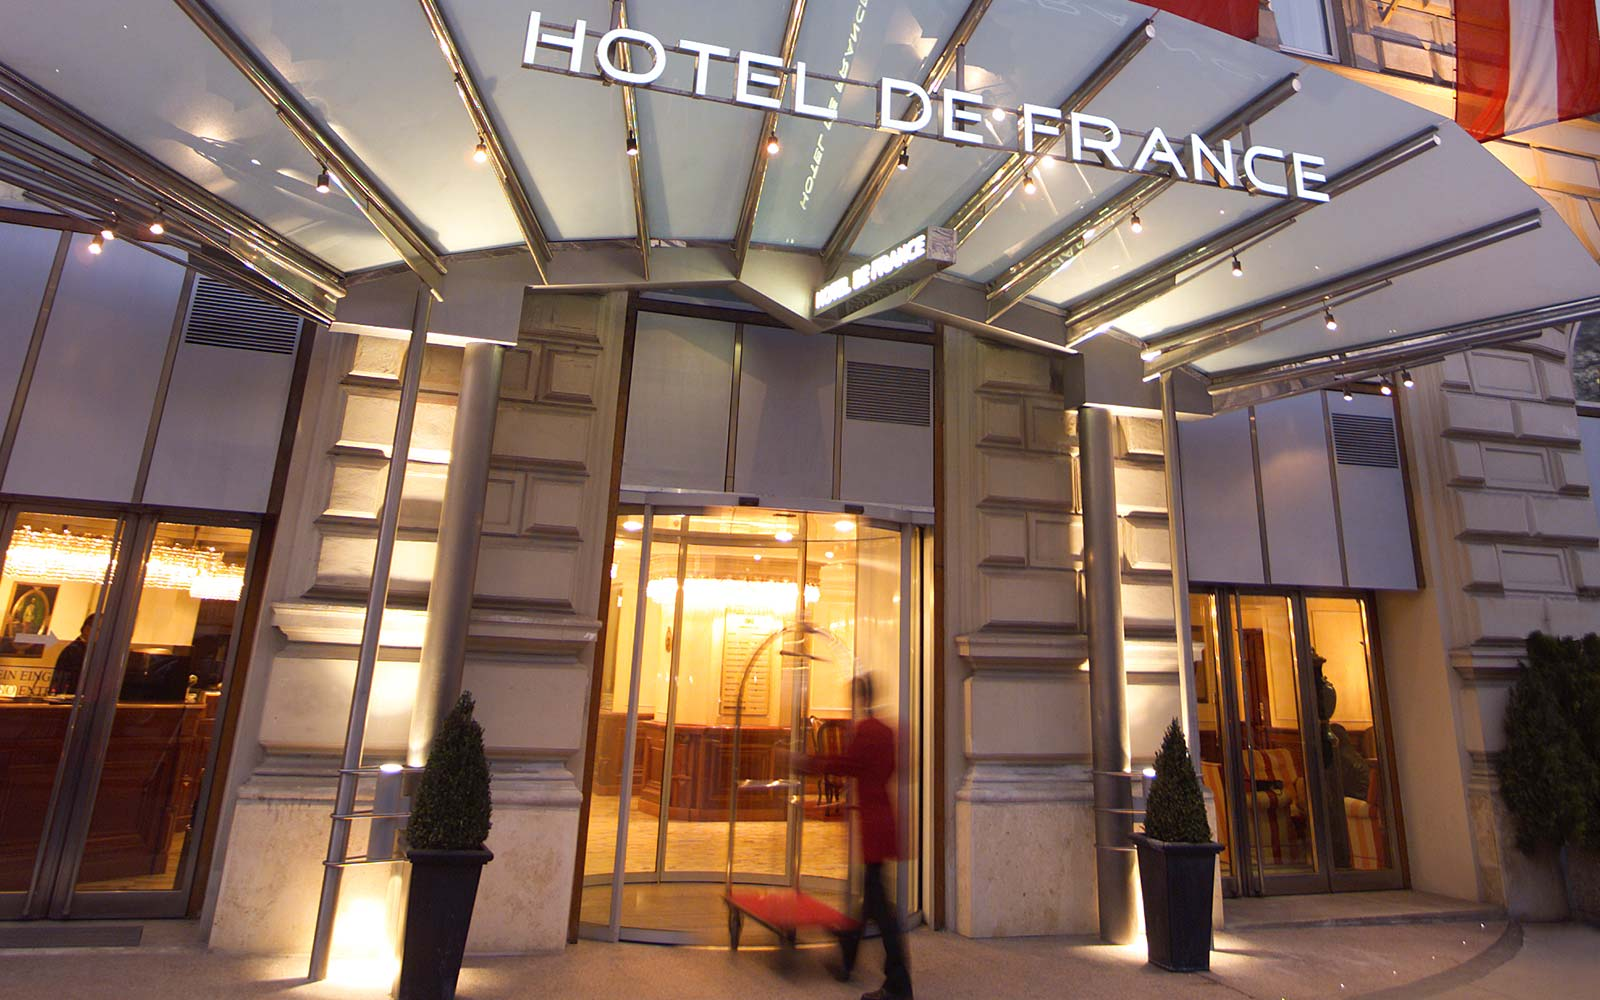 Jobs hotel de france wien gerstner imperial hotels for Hotel original france